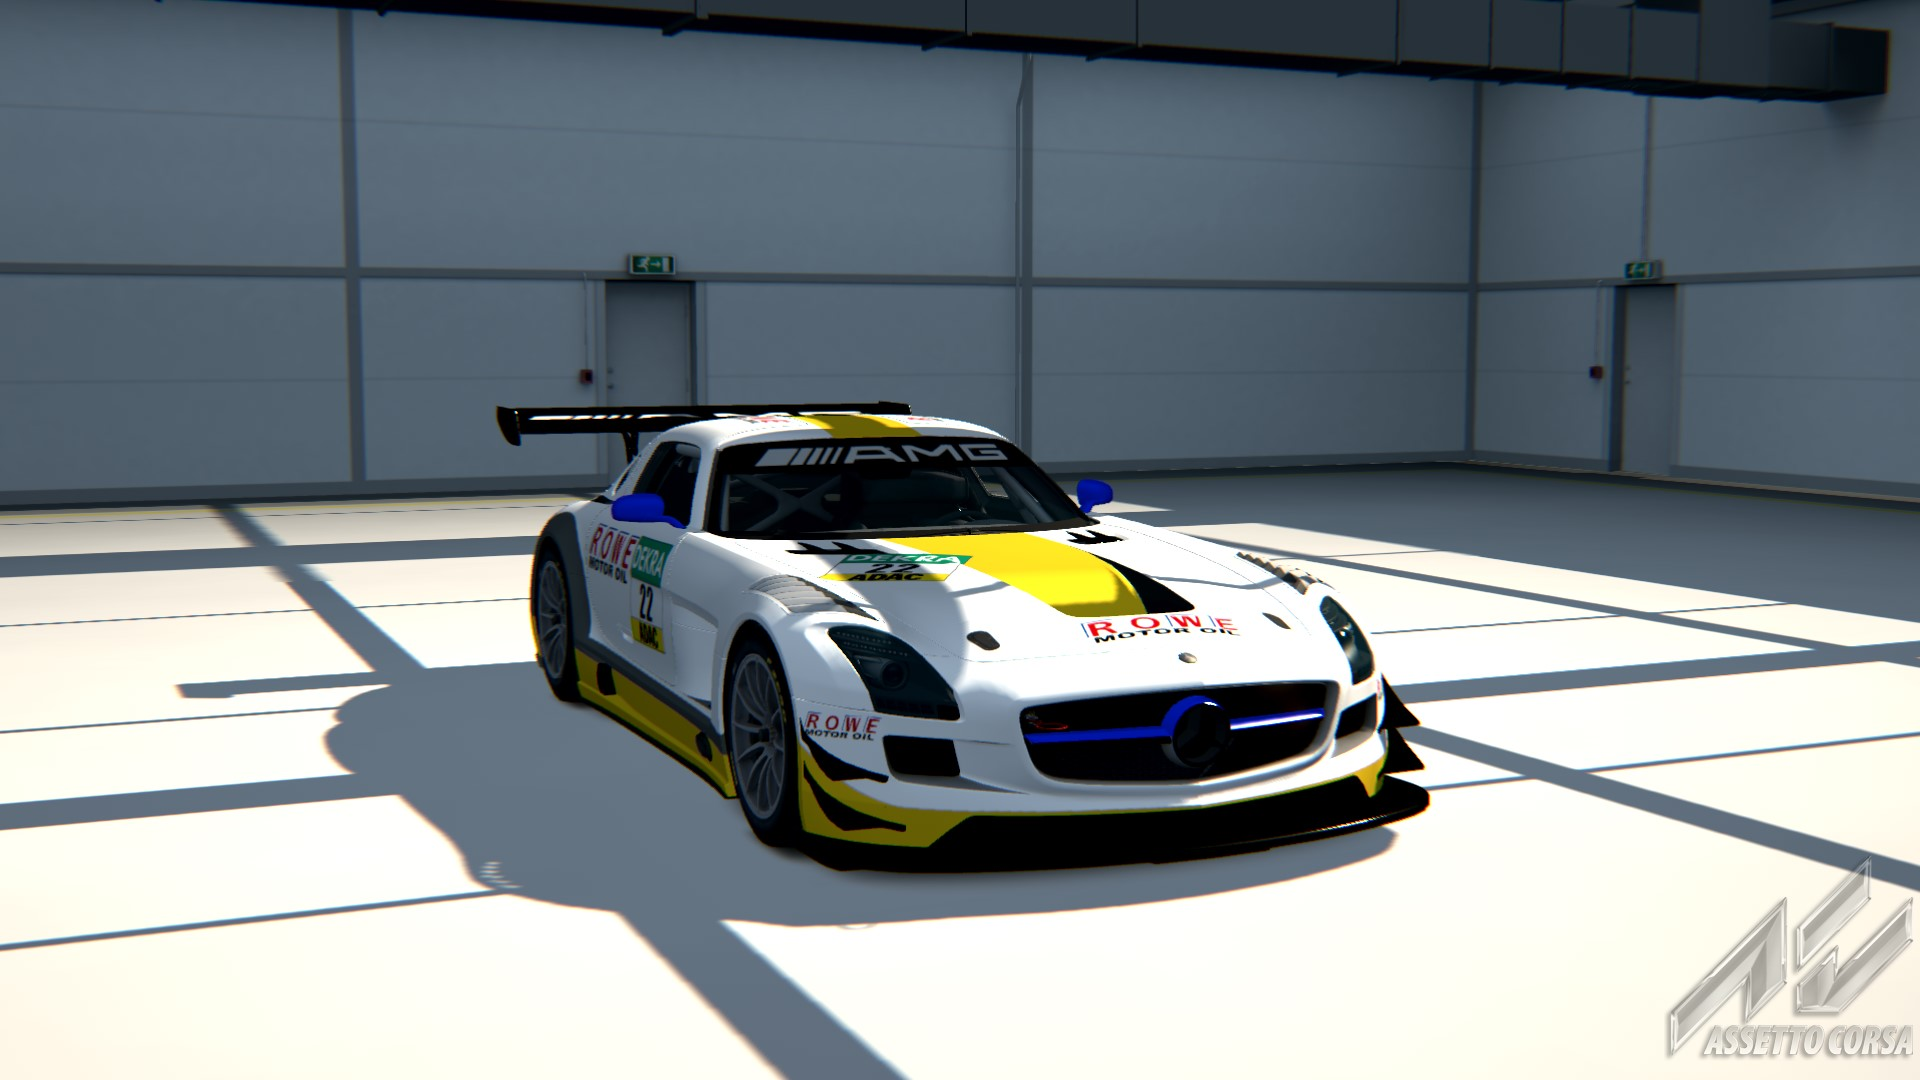 Showroom_mercedes_sls_gt3_16-9-2014-18-21-13.jpg